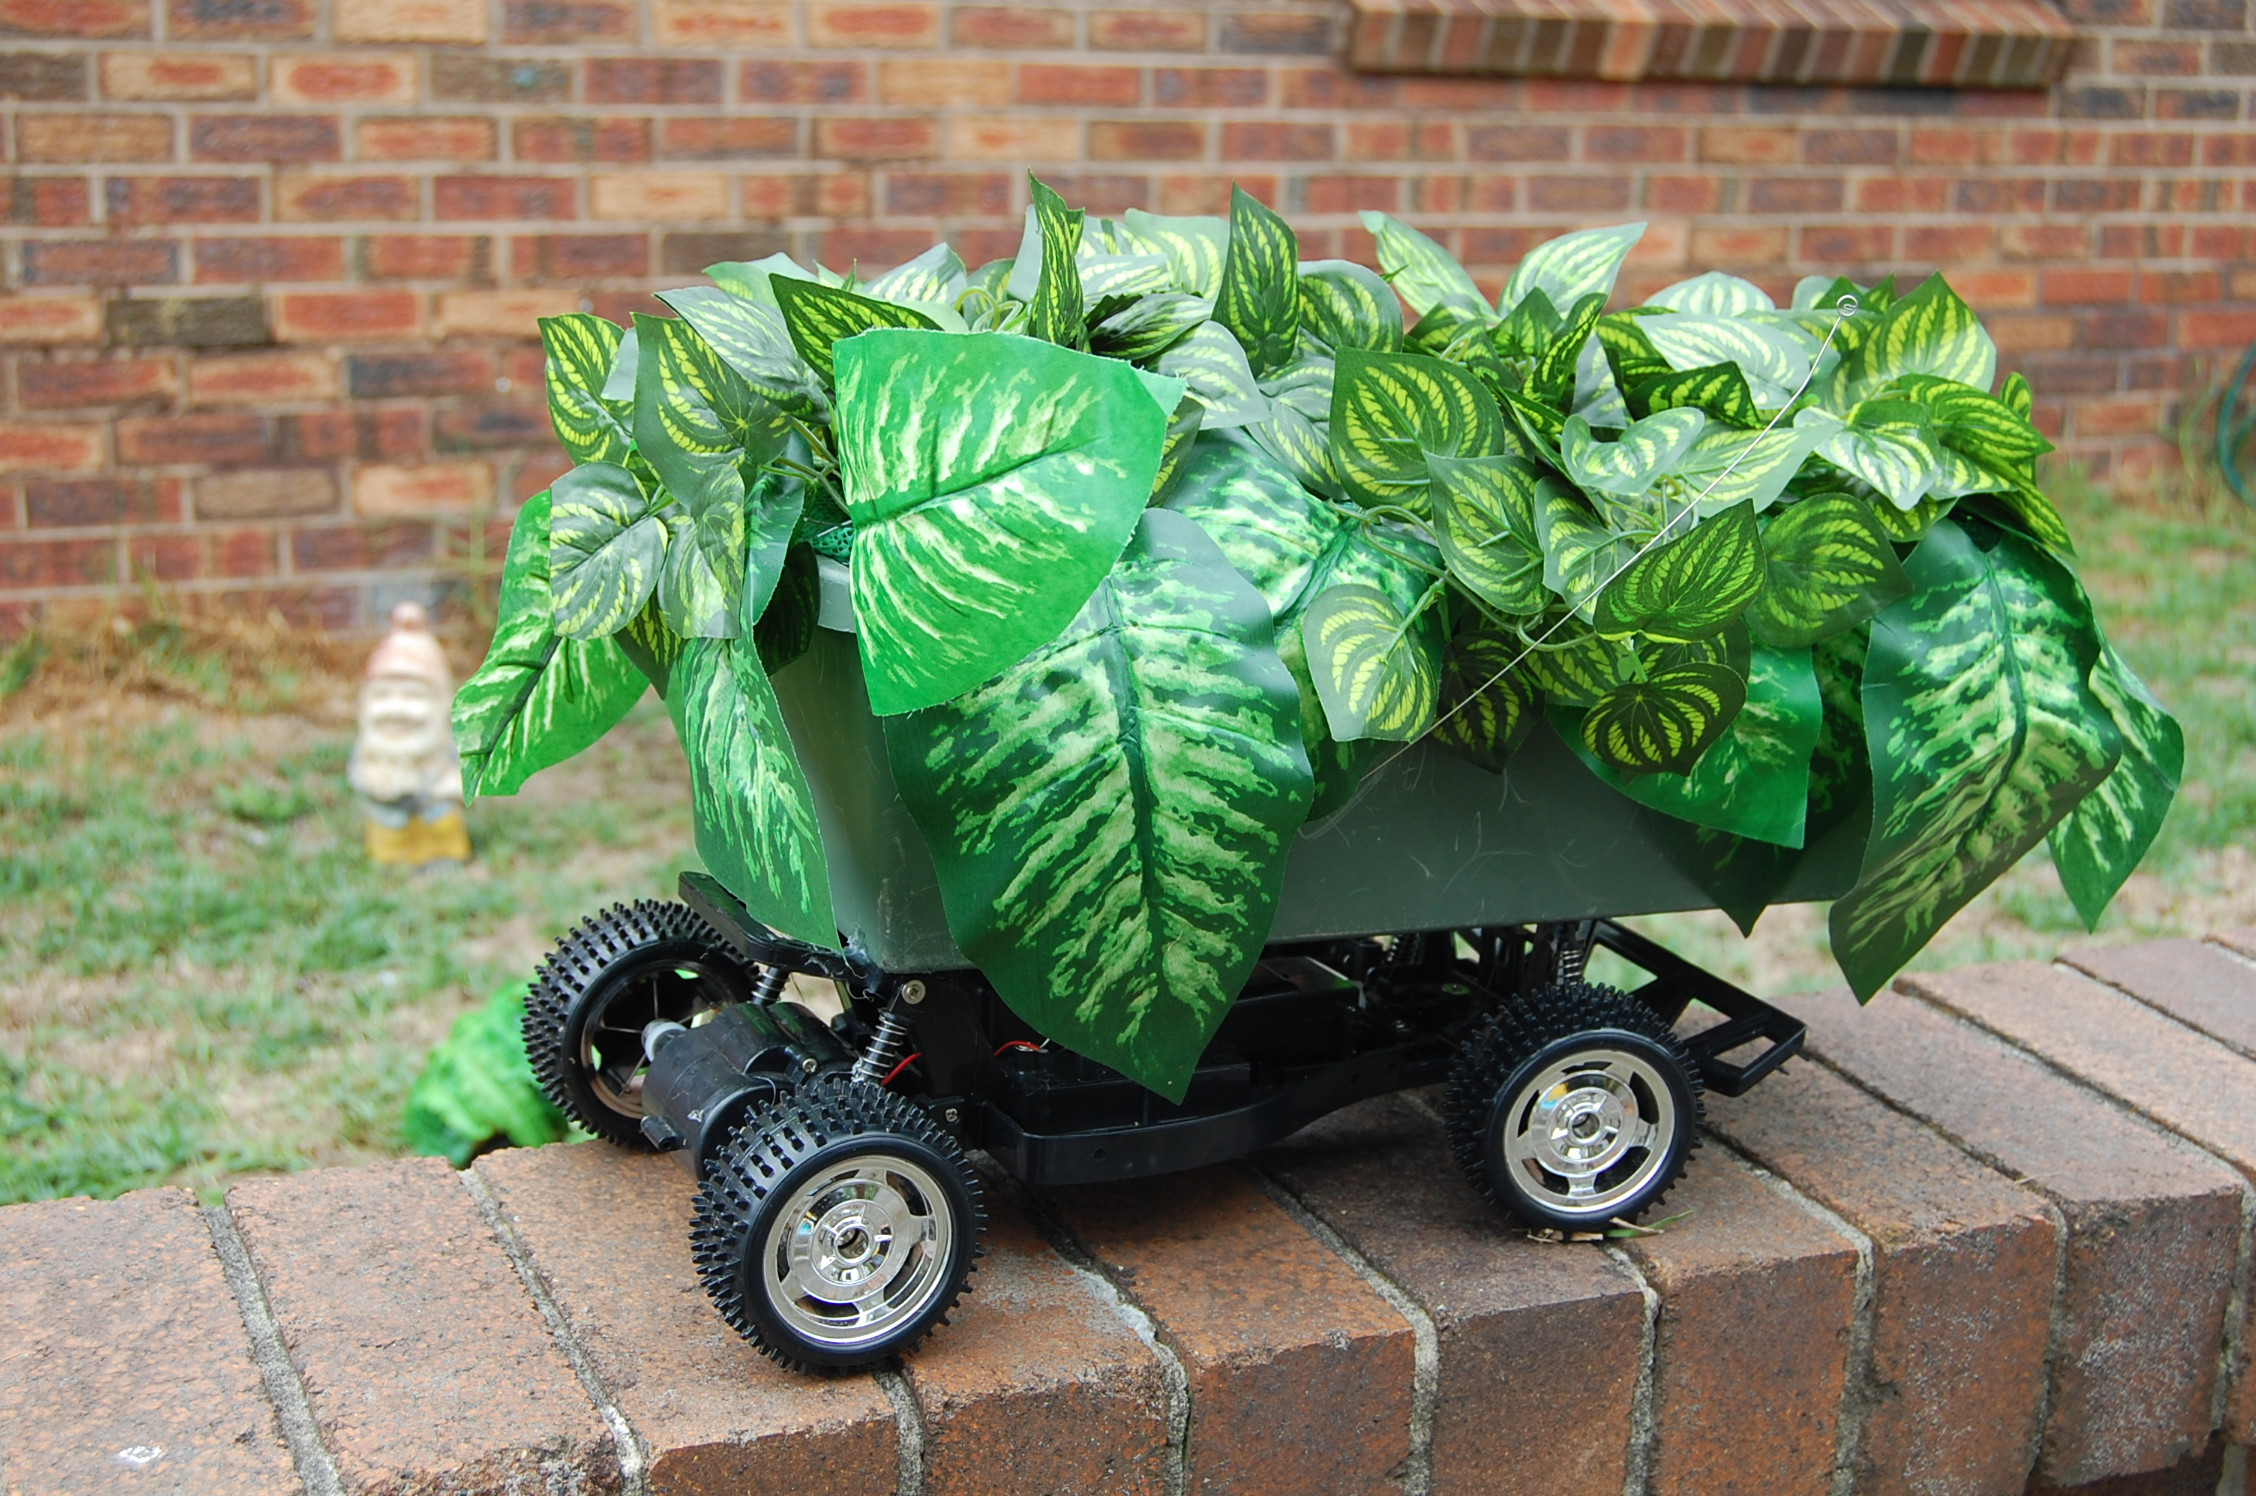 Remote Control Garden(vehicle view)30cmx 25cm, plastic foliage, paper, toy RC vehicle